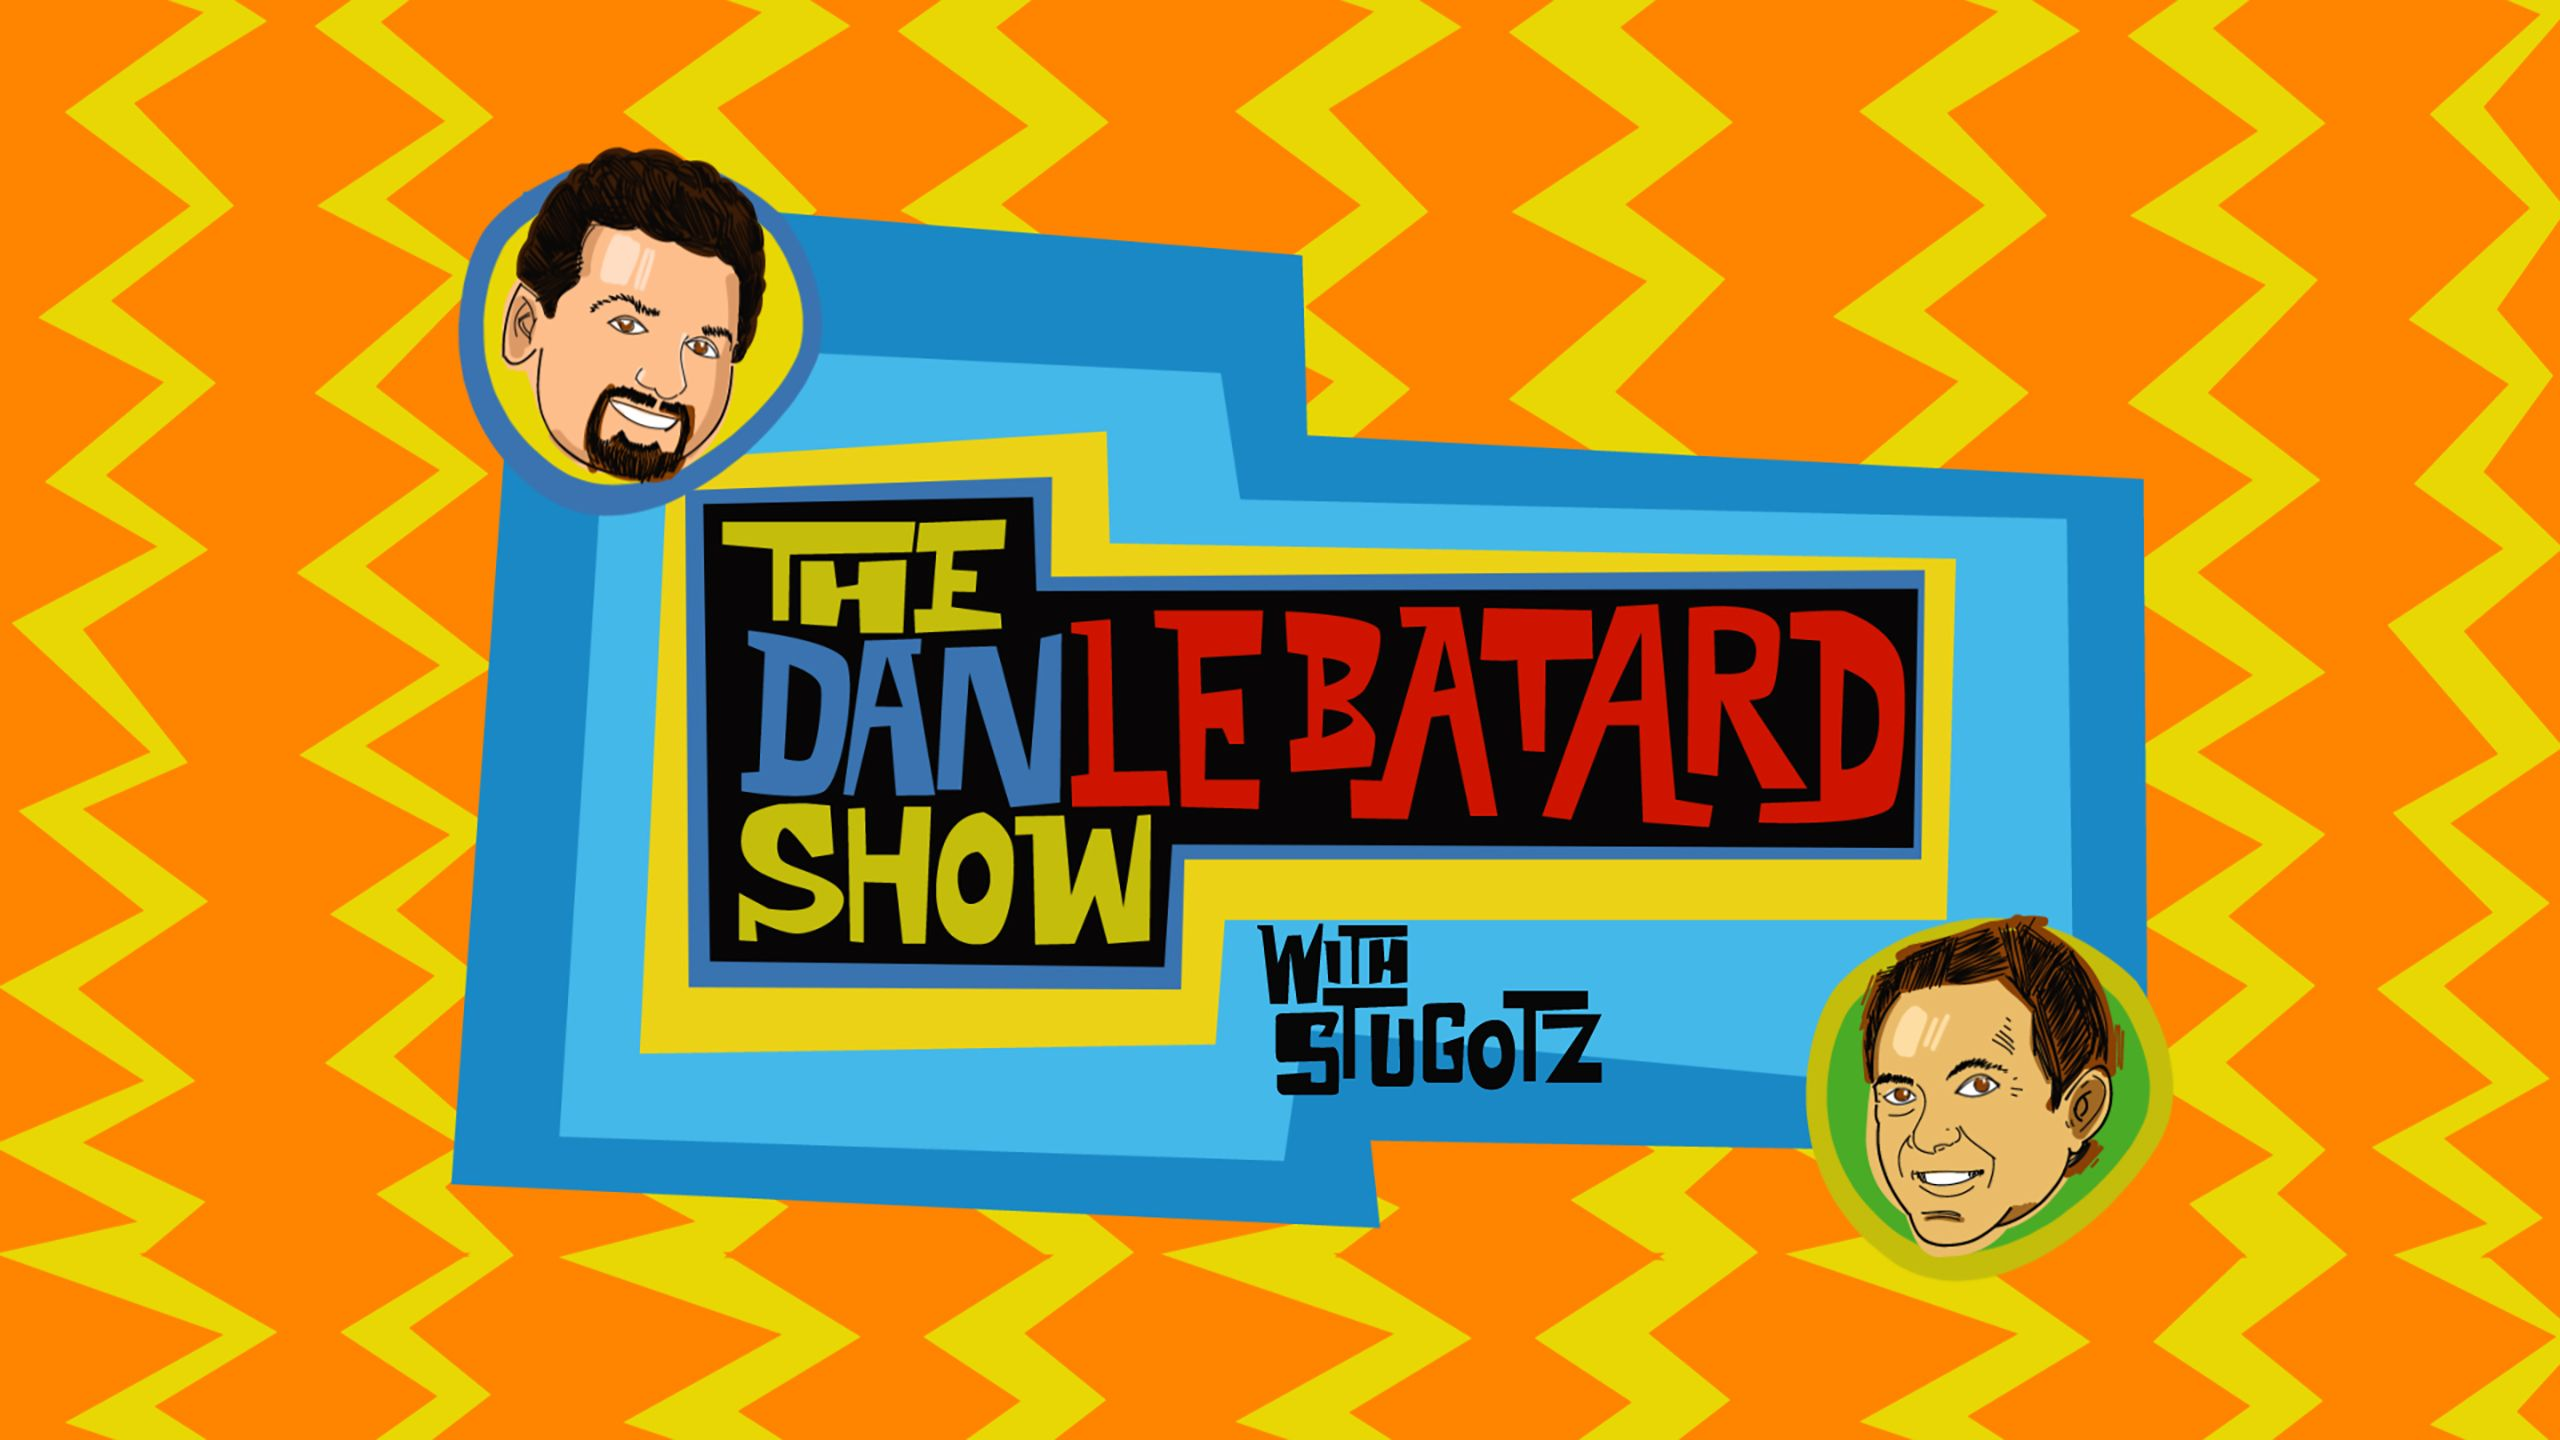 Wed, 5/23 - The Dan Le Batard Show with Stugotz Presented by Progressive